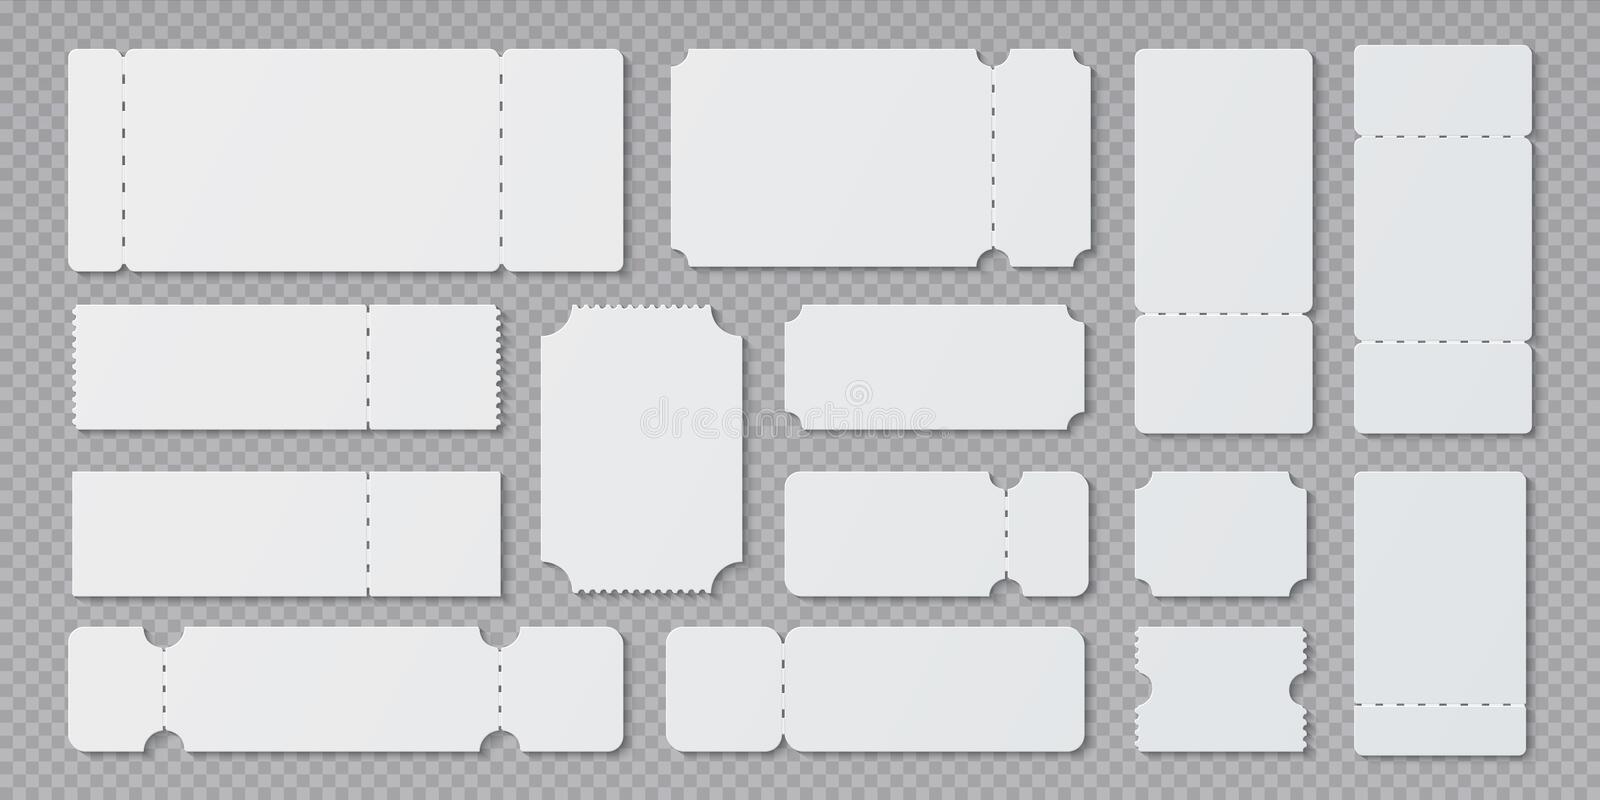 Empty ticket templates. Lottery coupon mockup, blank concert and movie ticket layouts. Vector ruffle edge different royalty free illustration